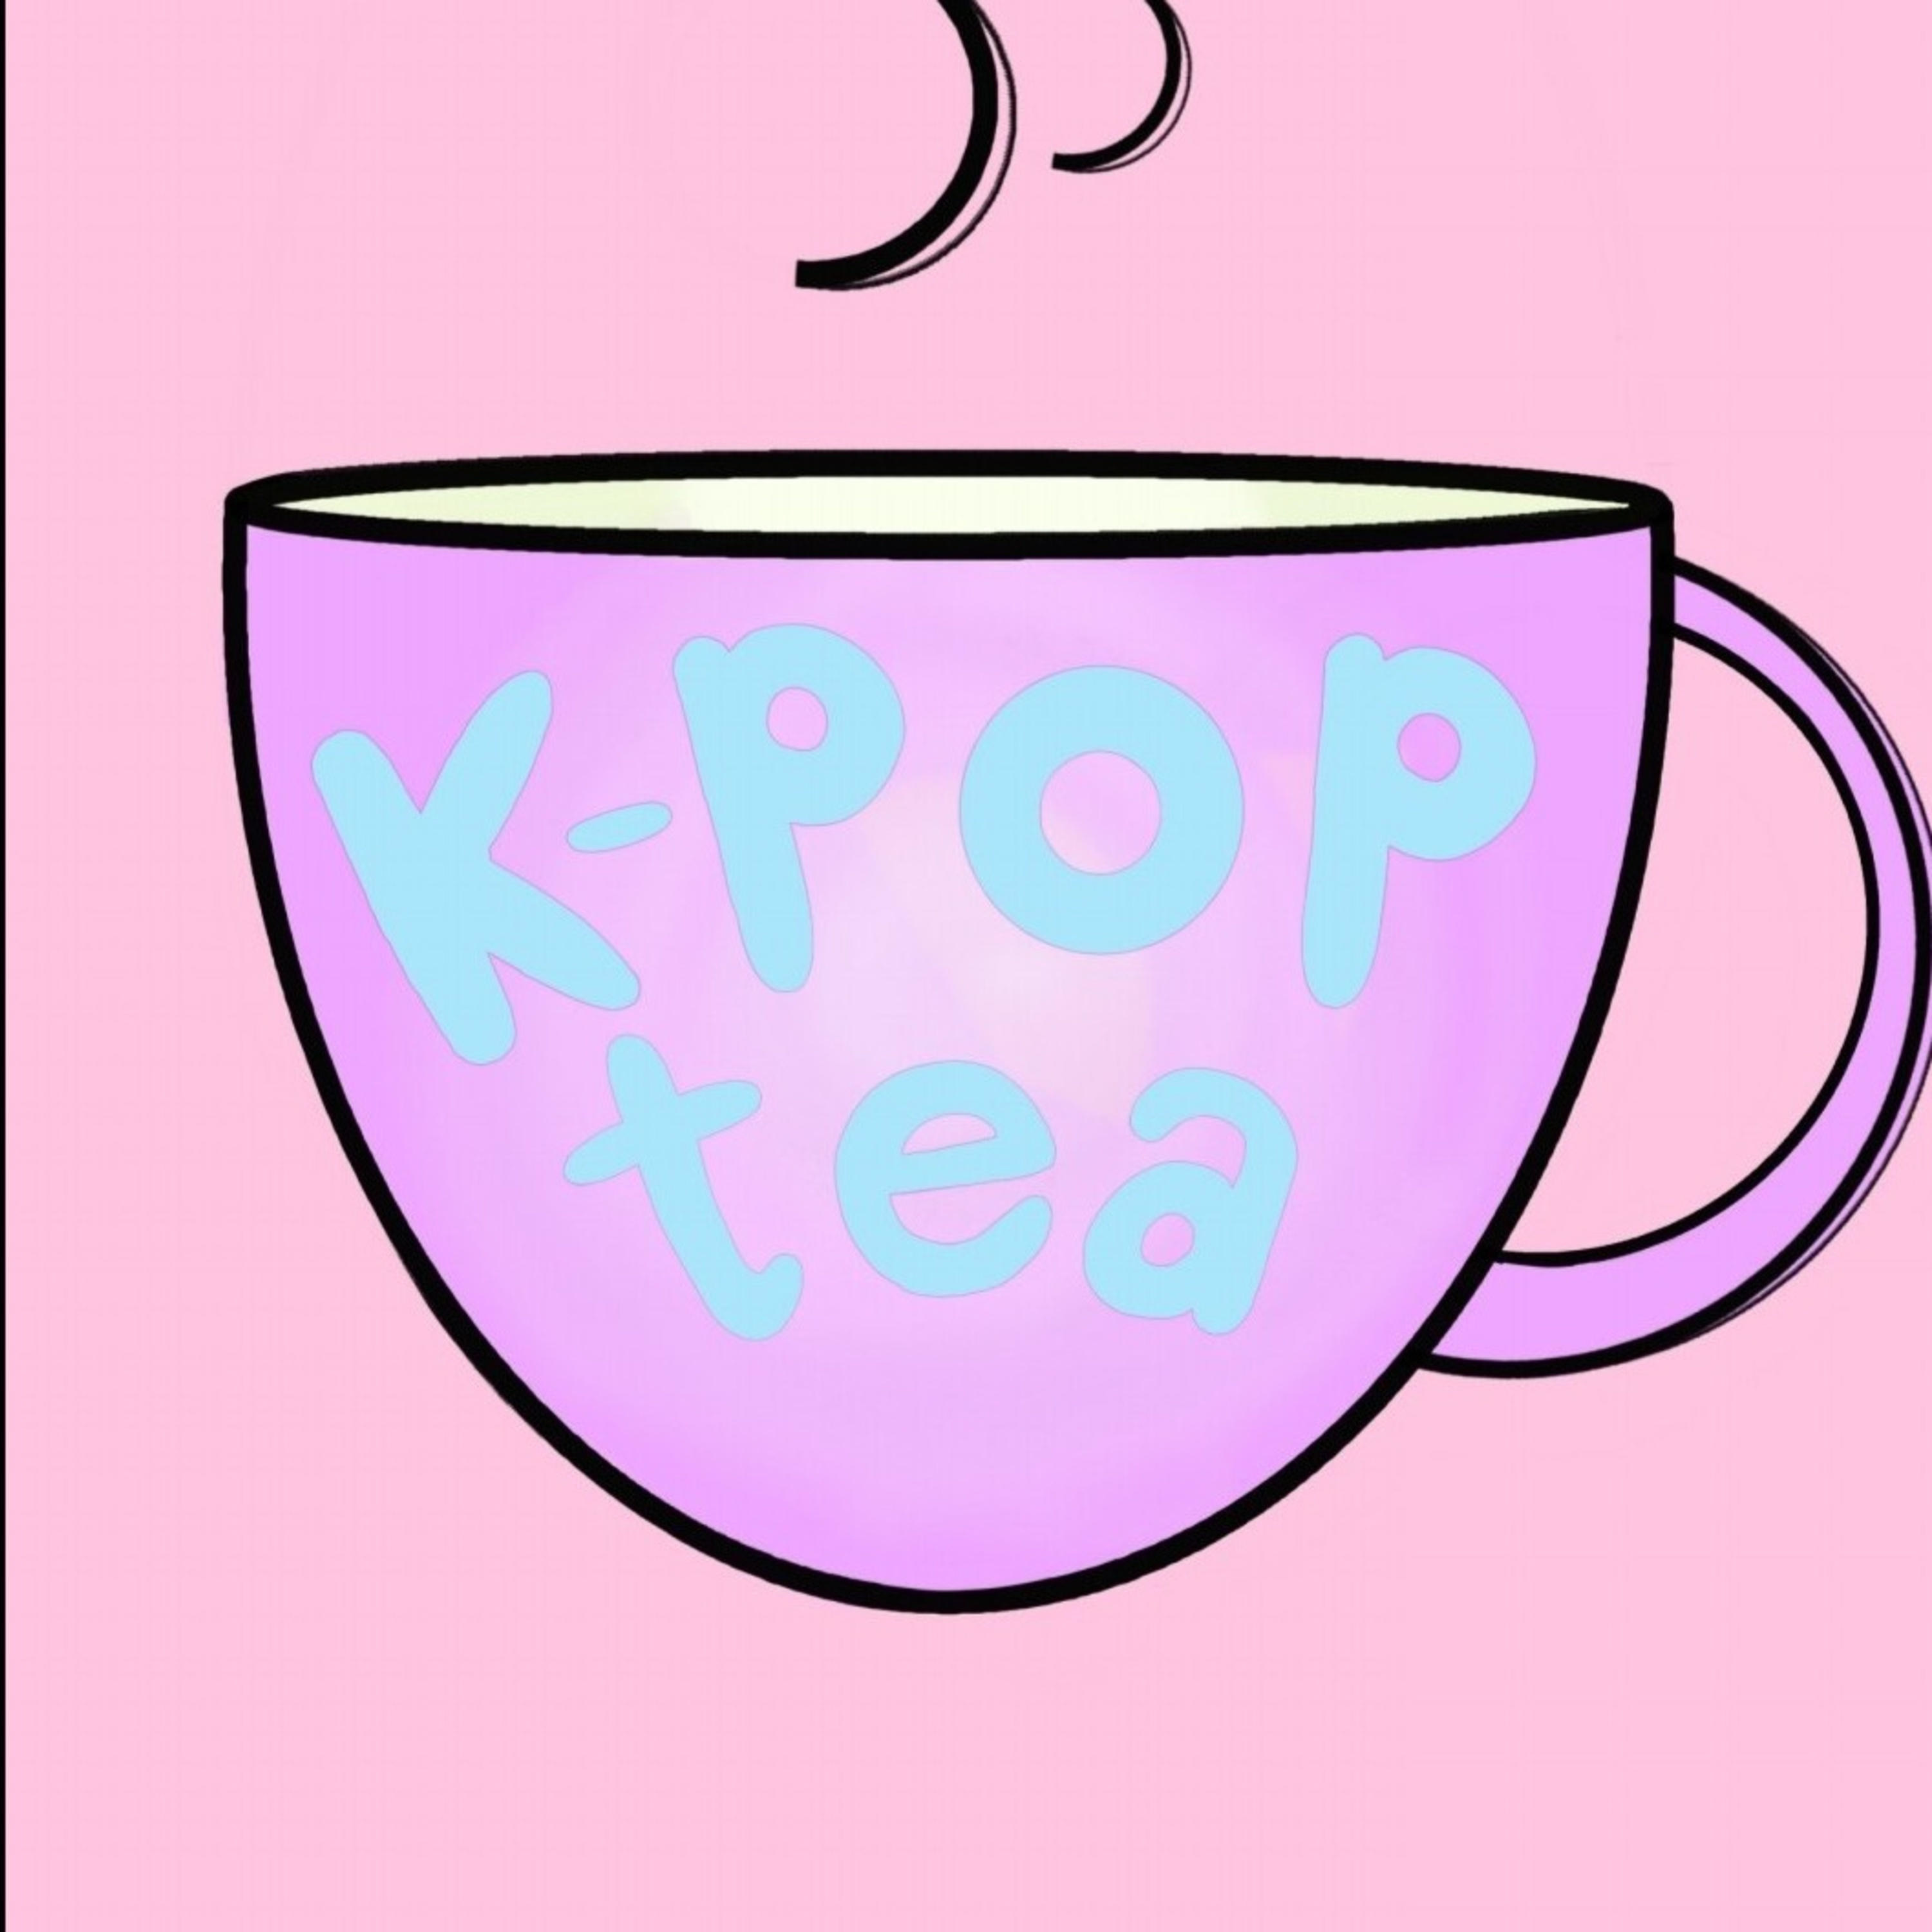 Kpoptea A Podcast On Anchor 1.) if you're sharing your pc build, it needs to feature an rgb profile that users can if you want a place to just share your pc then there are plenty of other subreddits. kpoptea a podcast on anchor